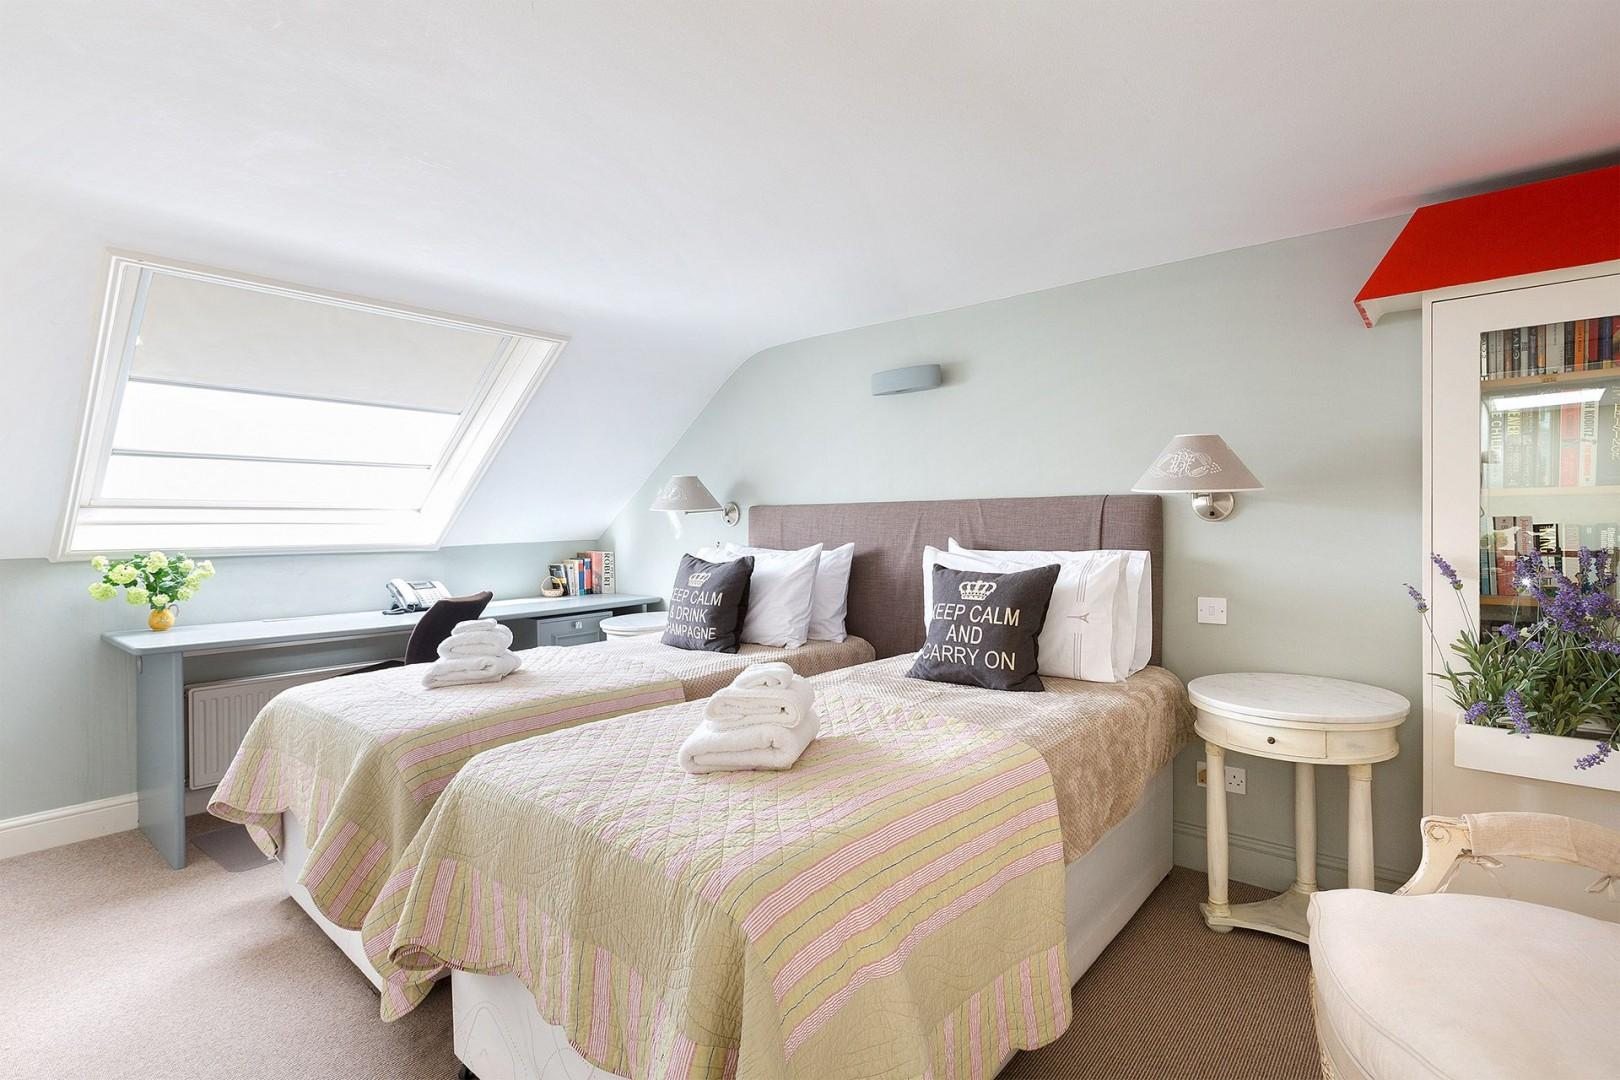 Third bedroom unzipped to form Twin Beds